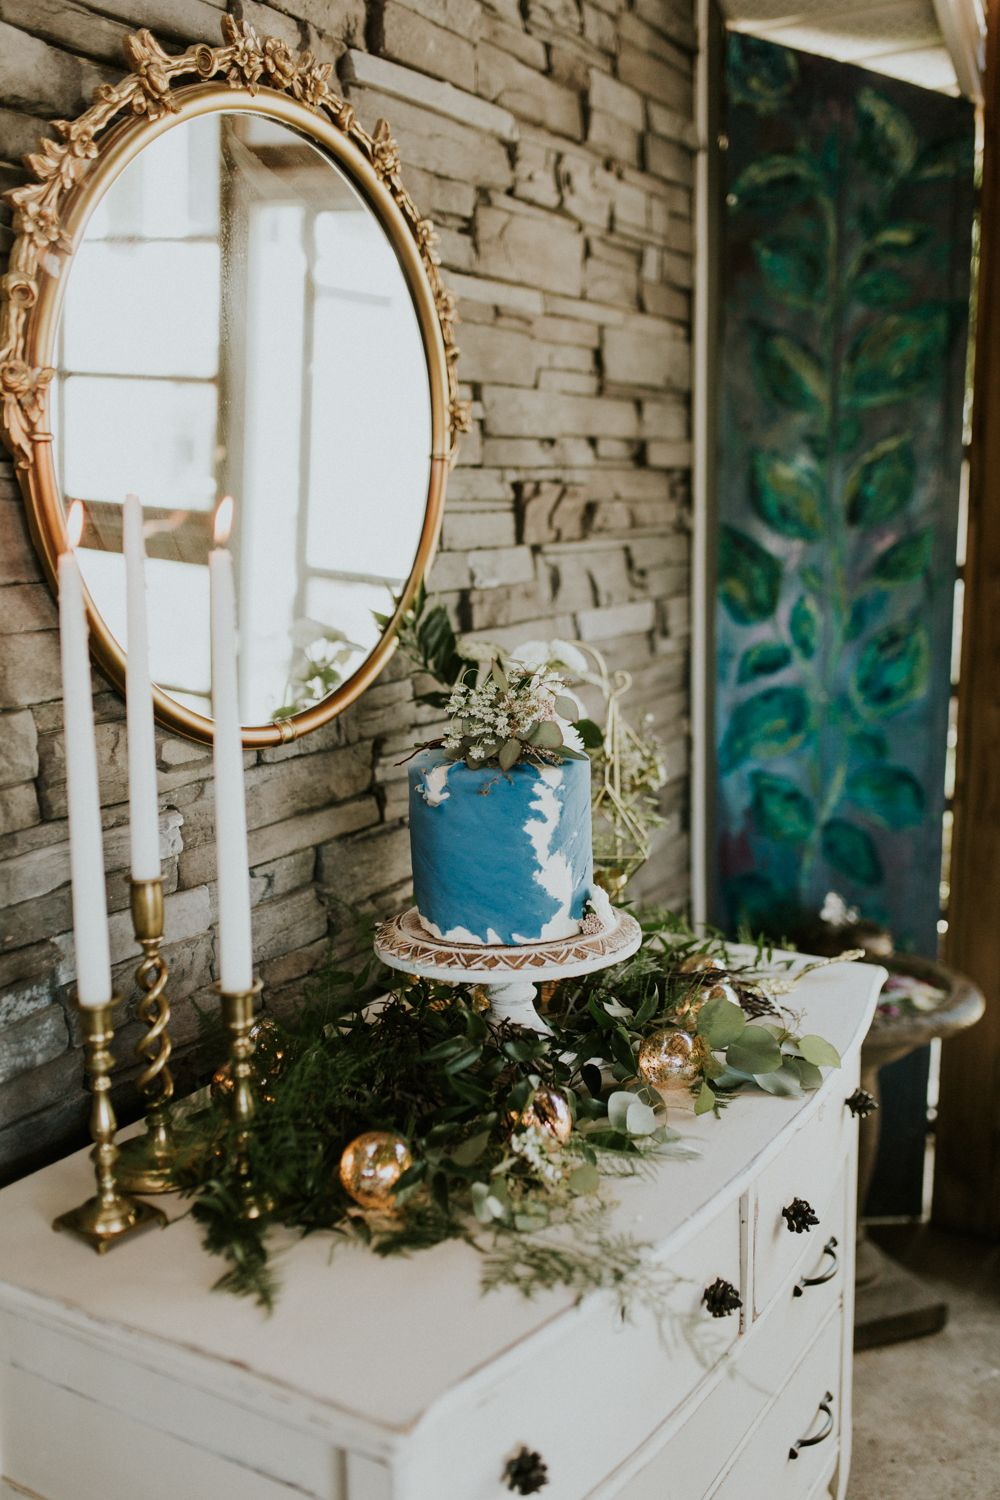 Hang a mirror and decorate on the sides with flowers